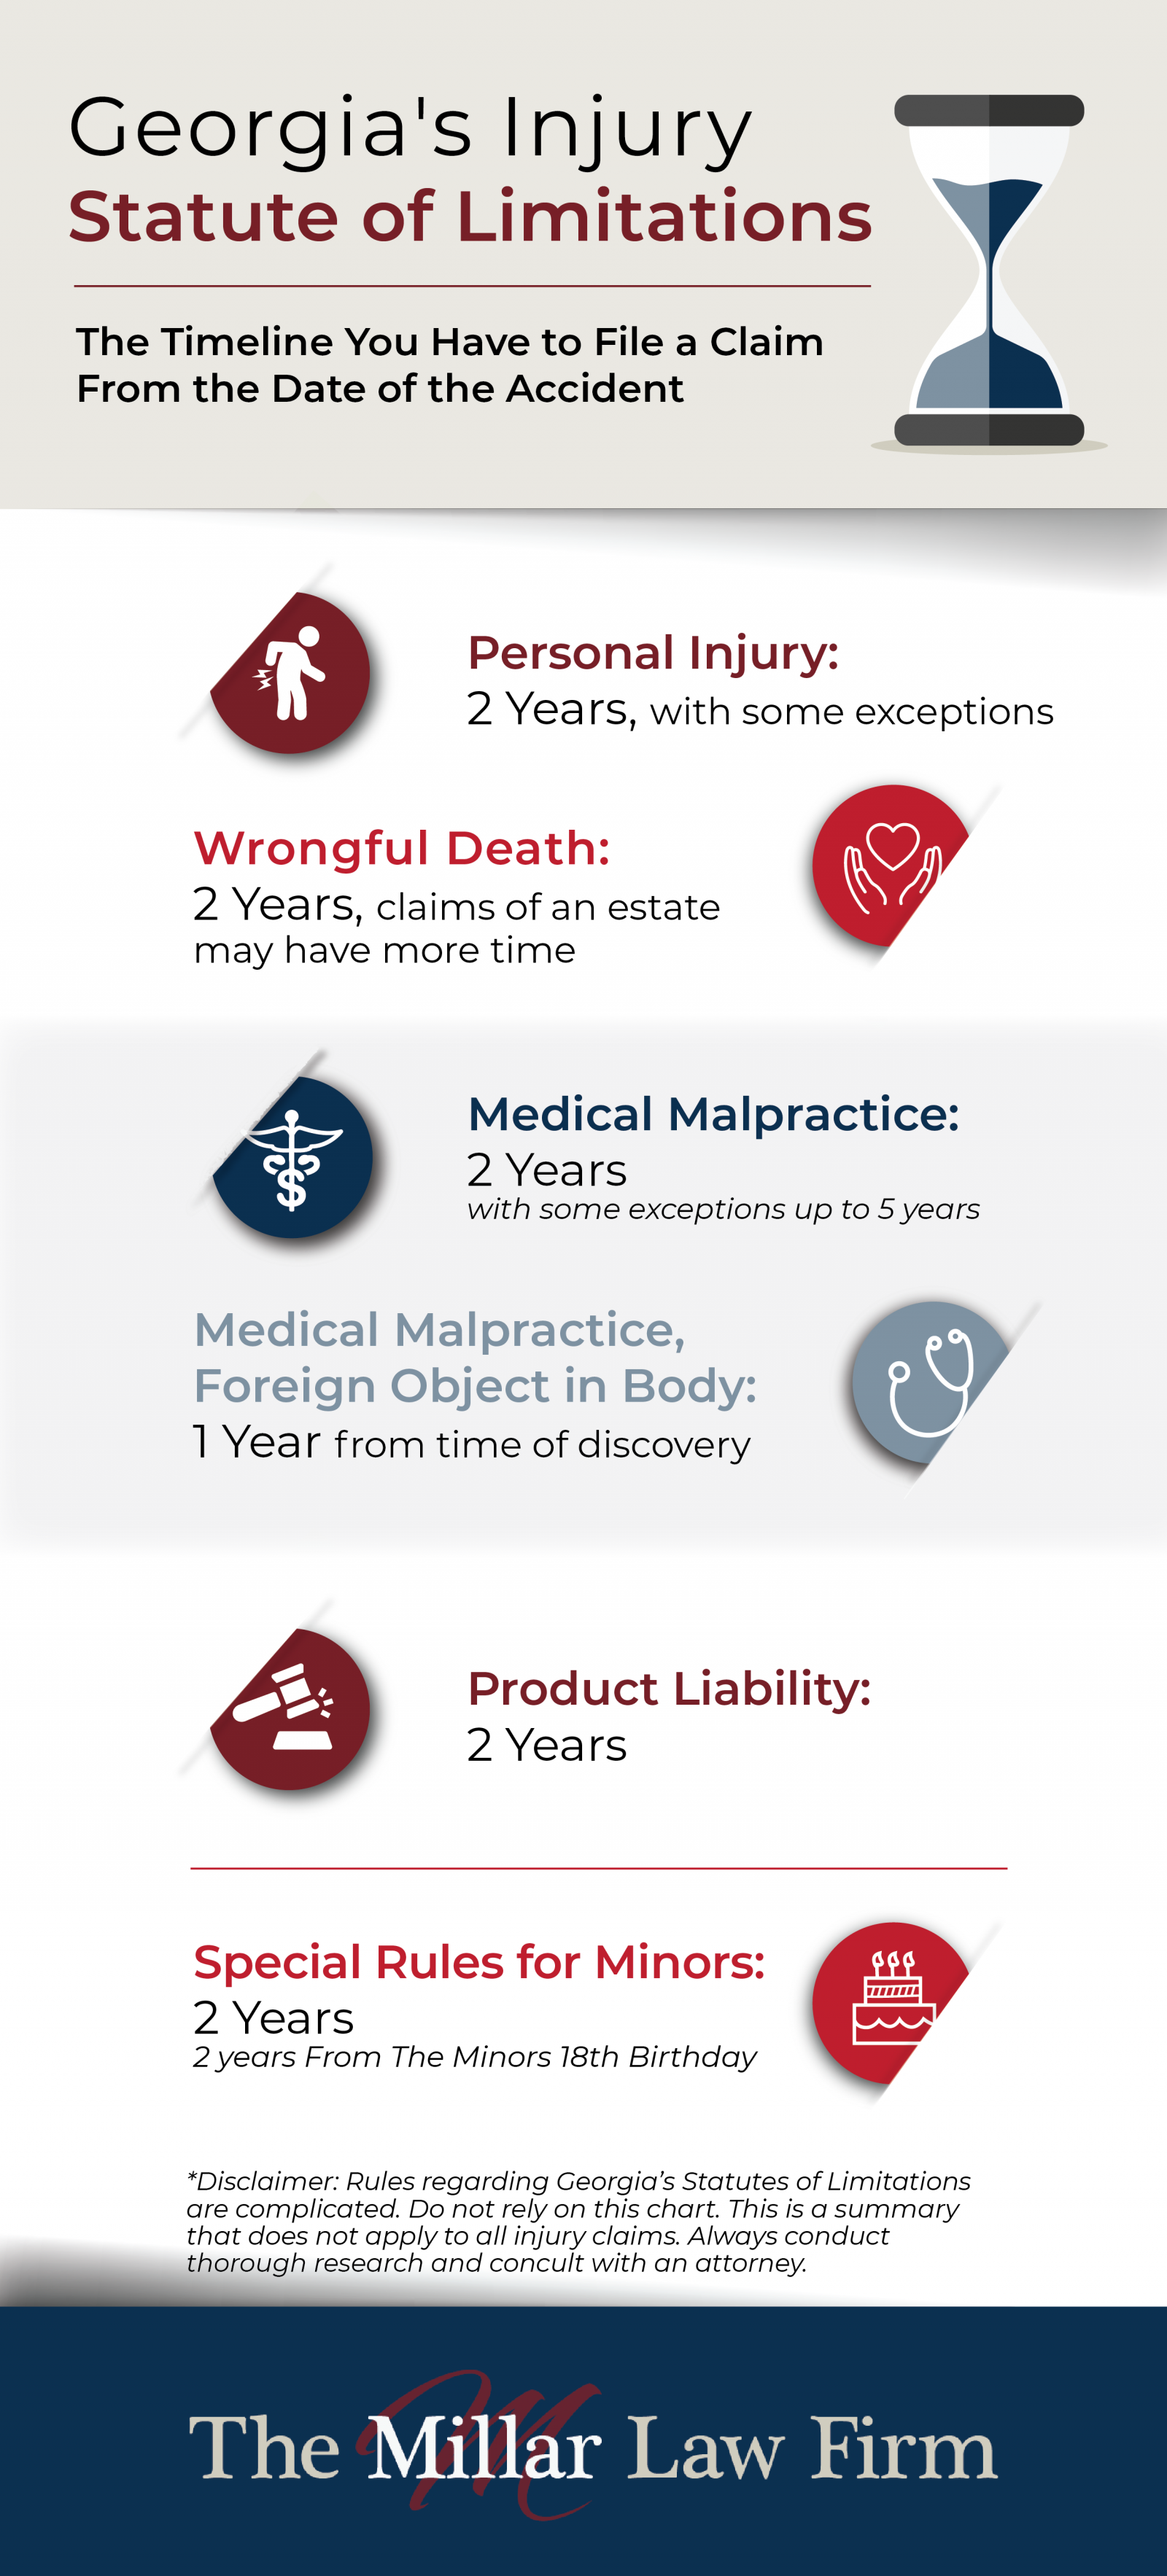 Georgia Statute of Limitations Infographic for Personal Injuries